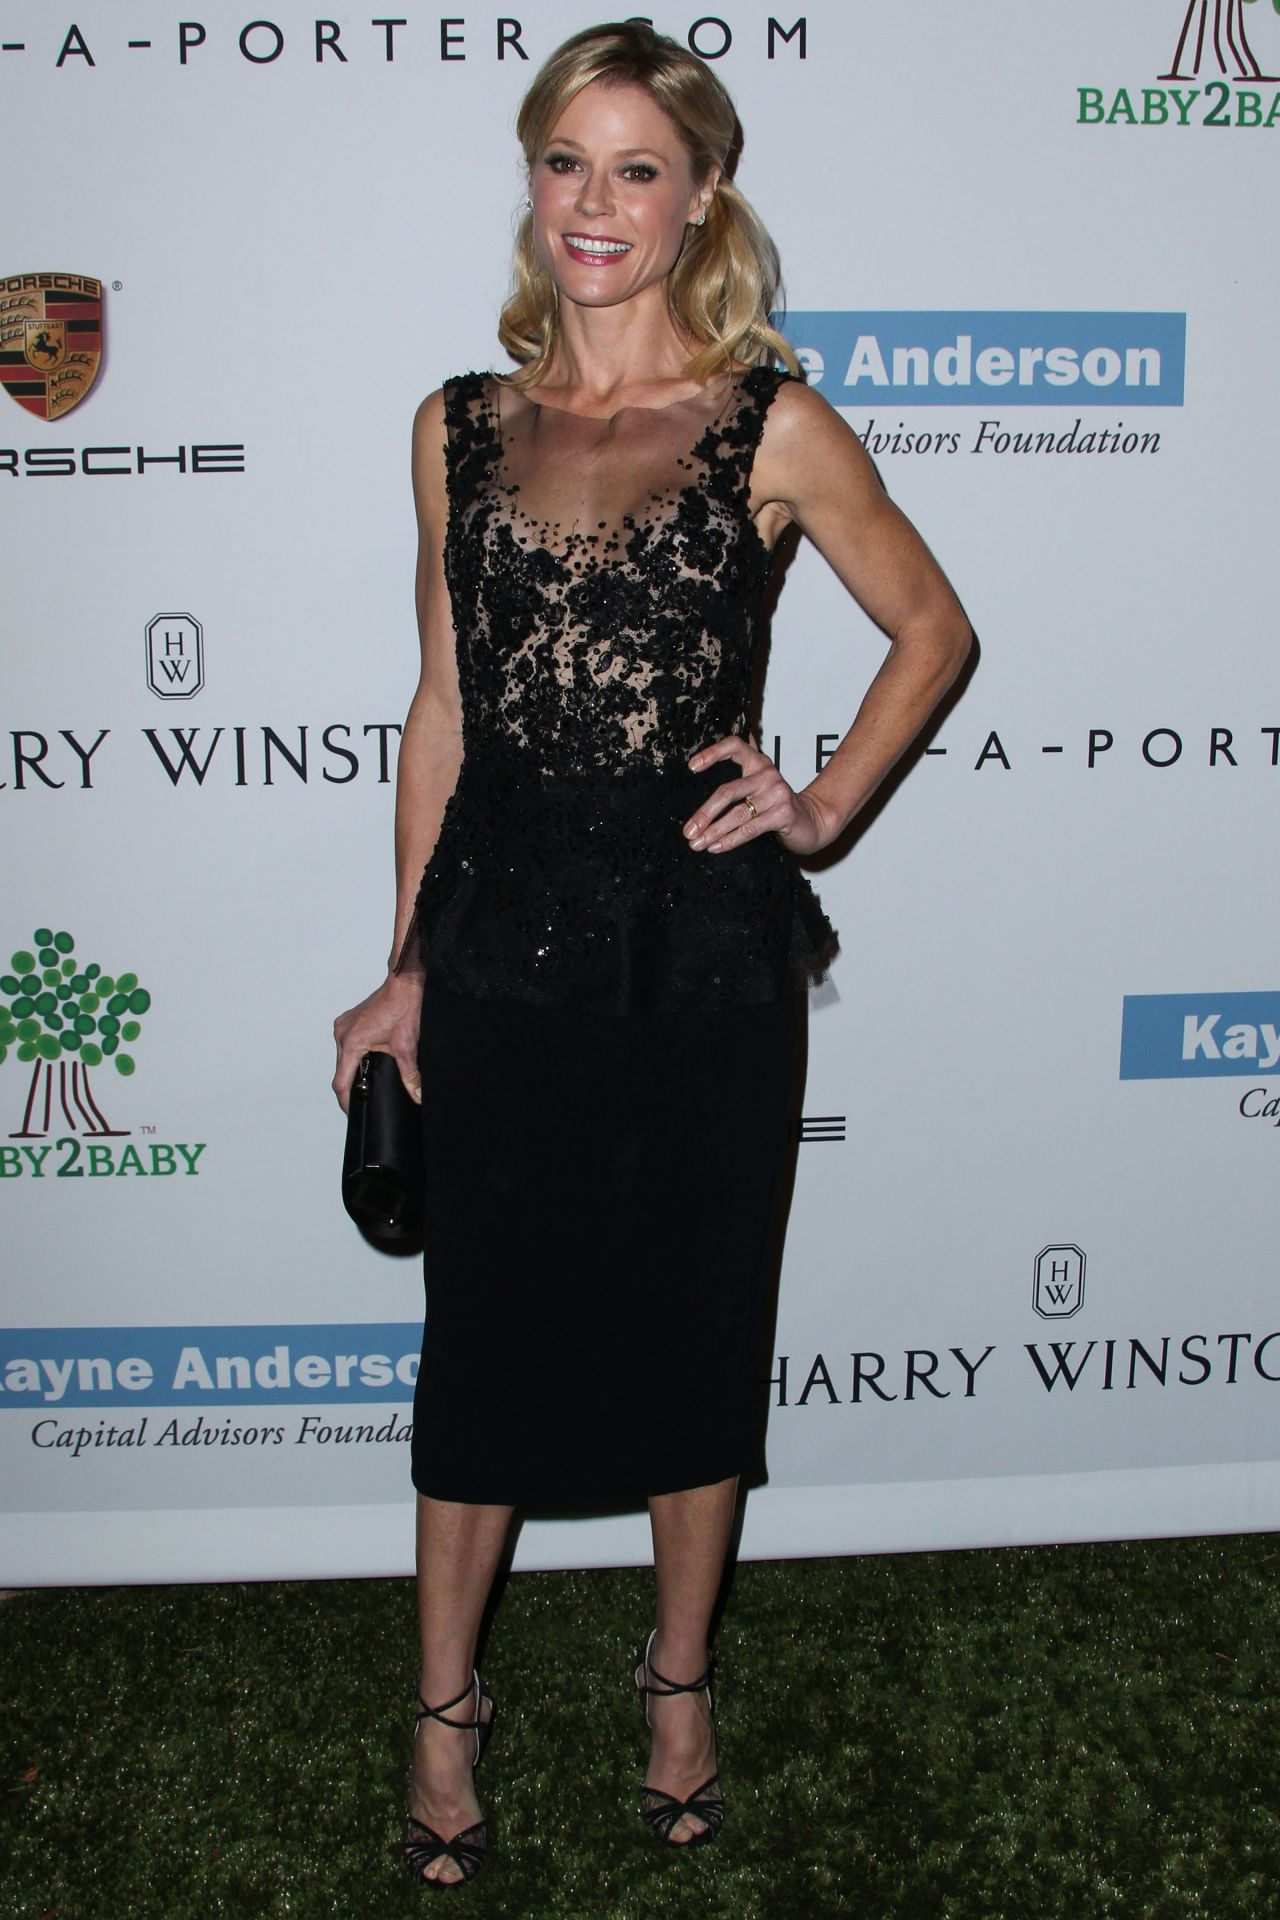 Julie Bowen Attends Second Annual Baby2Baby Gala in Culver City